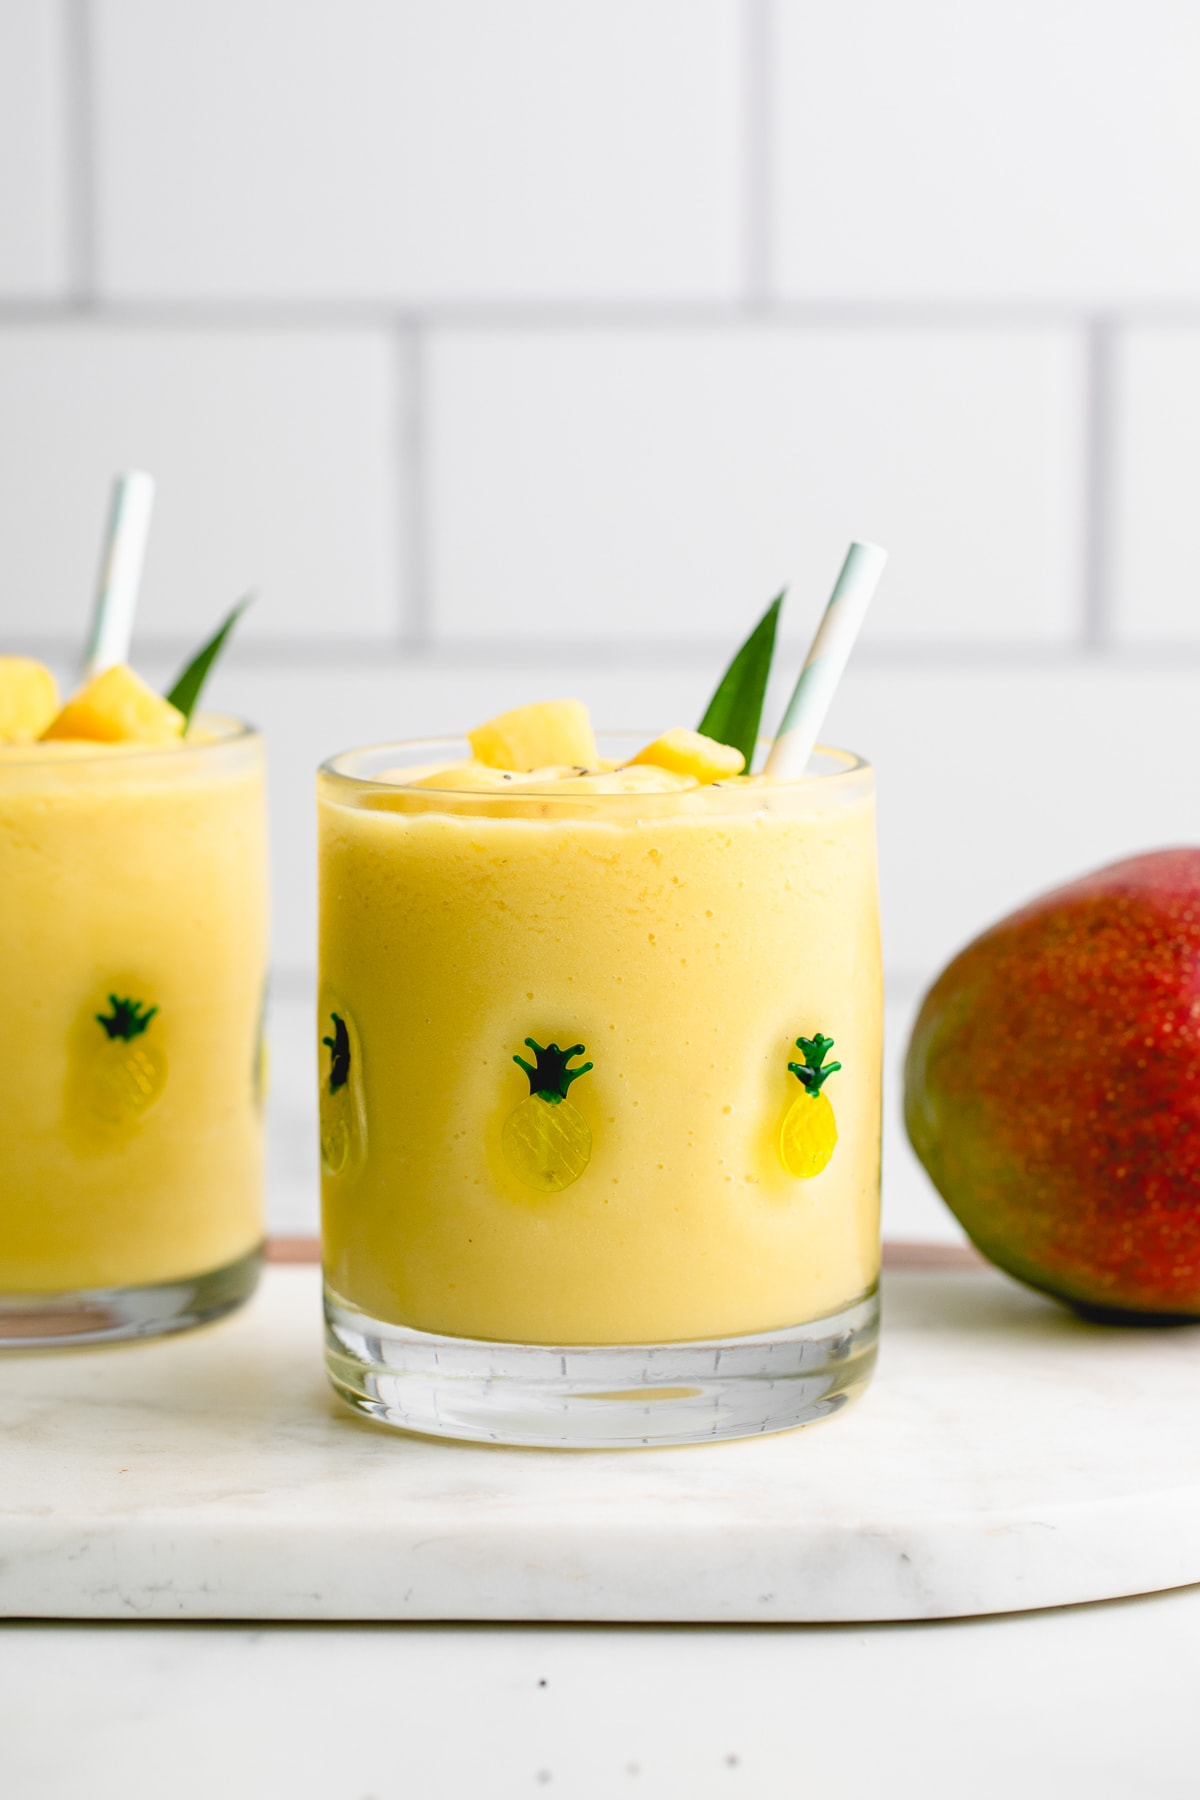 head on view of pineapple mango banana smoothie in a glass with items surrounding.